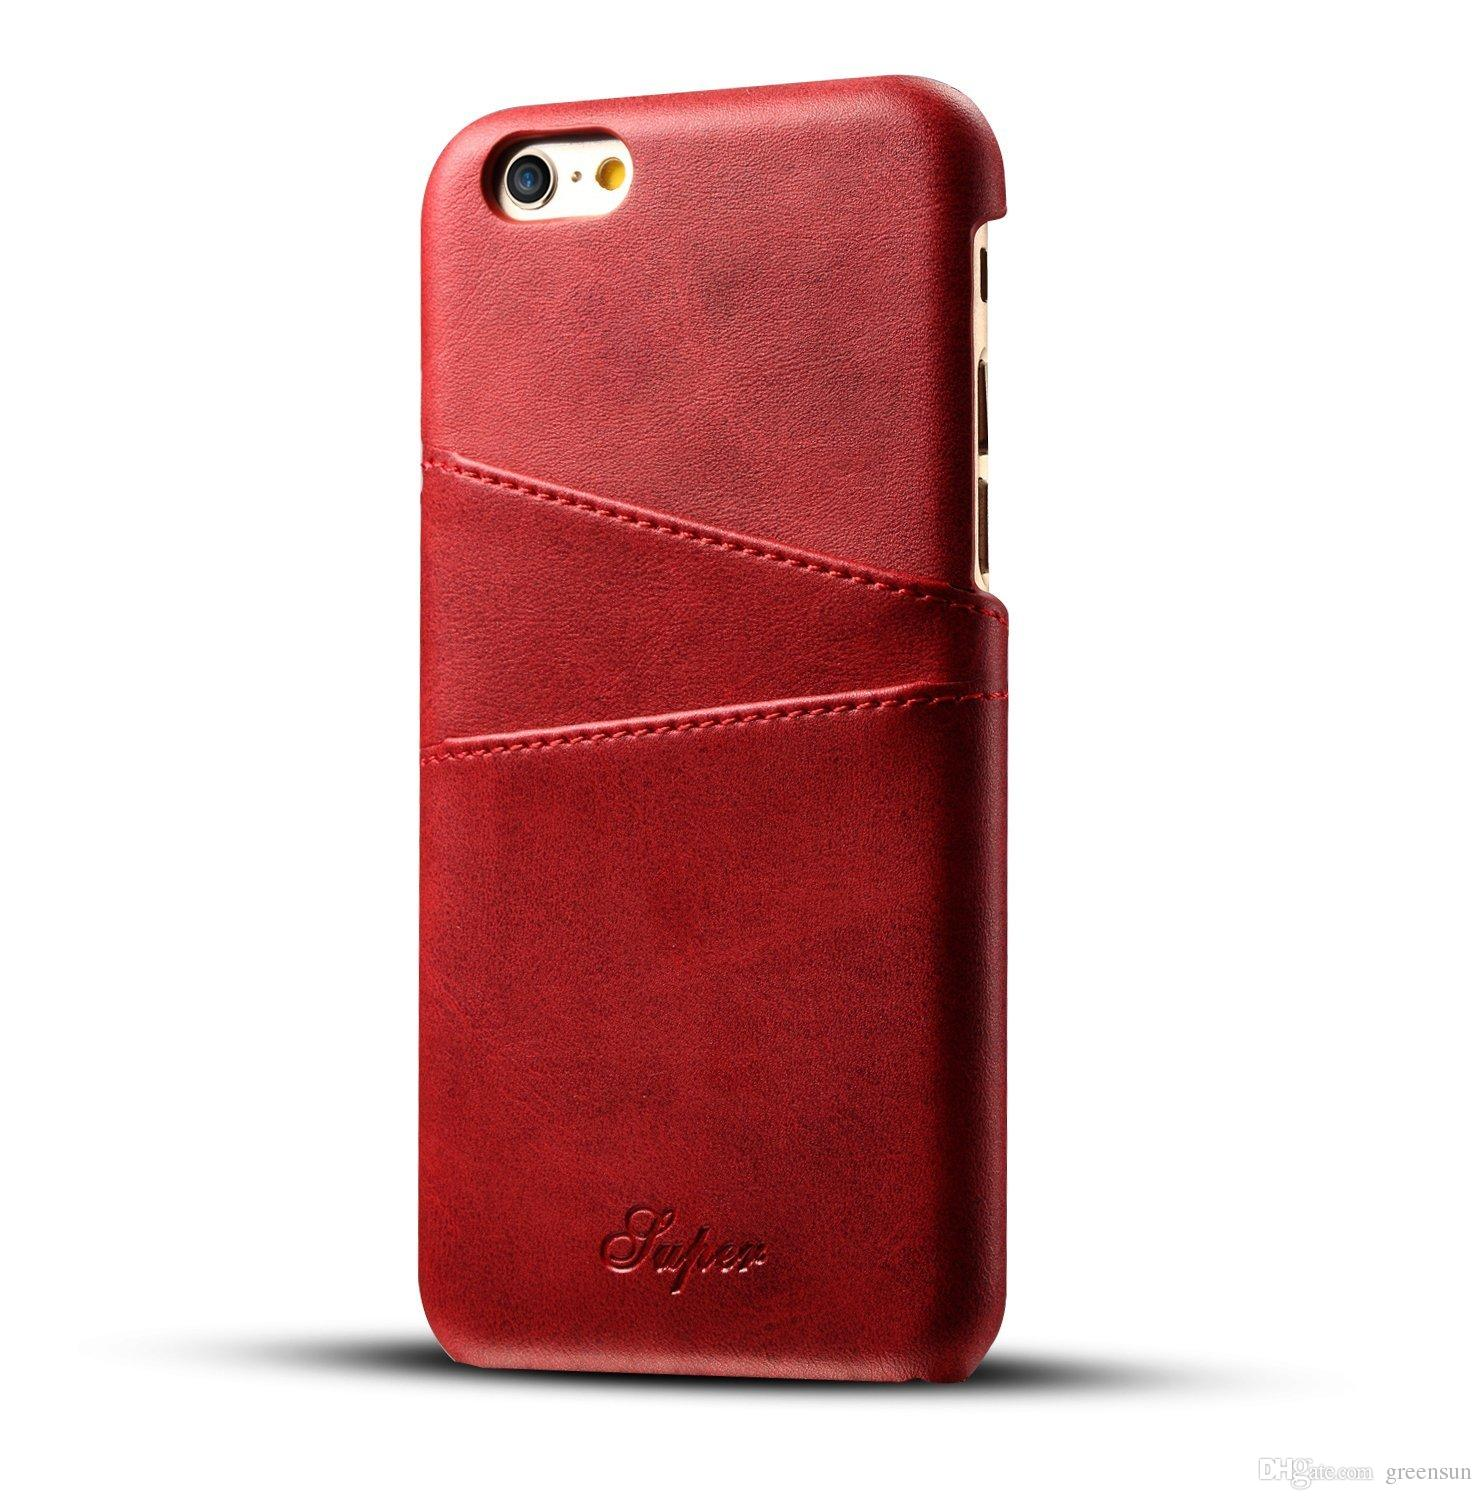 huge selection of 93dbf 24a25 SALE! Luxury Genuine Wallet Phone Case, Slim Leather Back Case Cover With  Credit Card Holder for iPhone 6/6s with retail packing